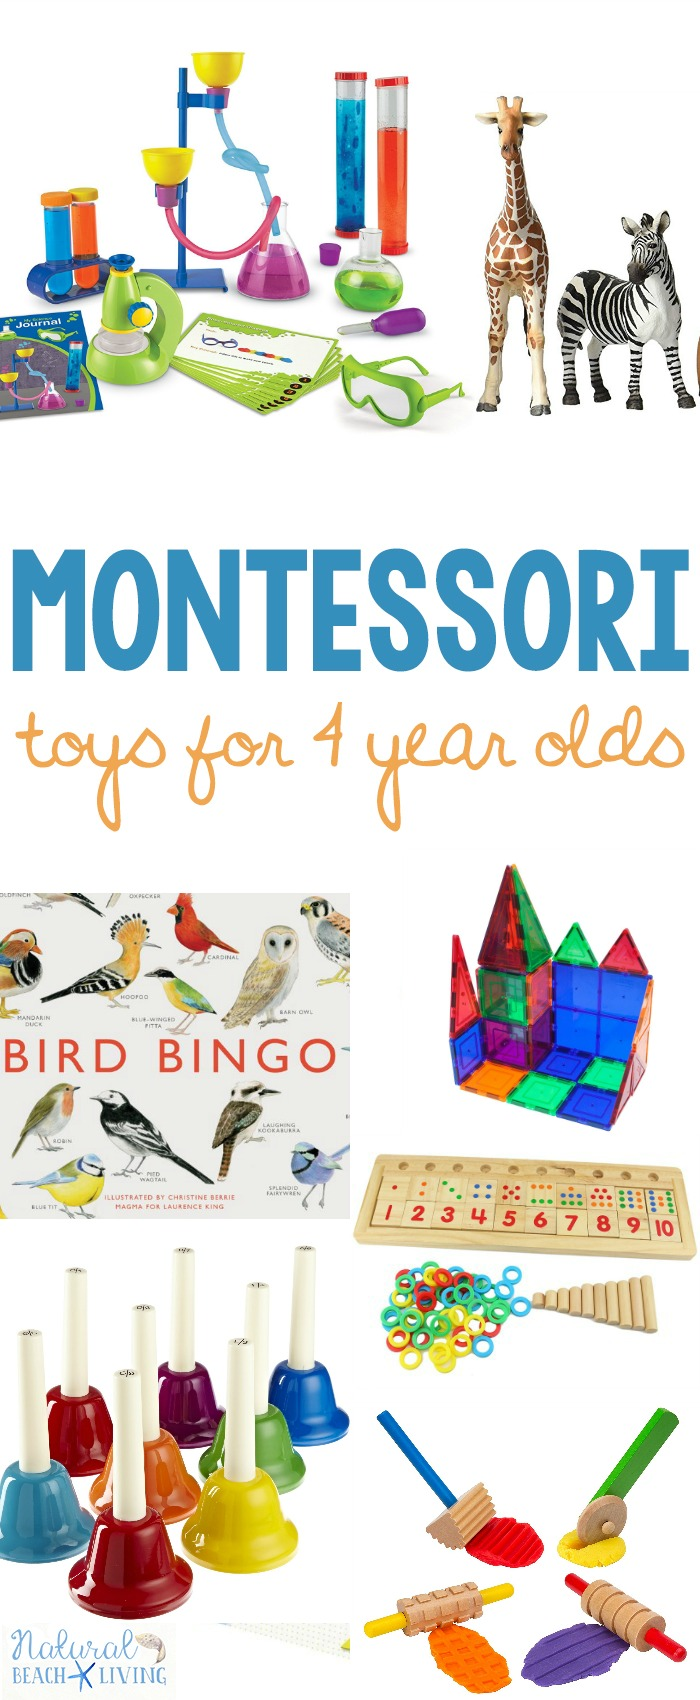 the ultimate guide for the best montessori toys for 4 year olds